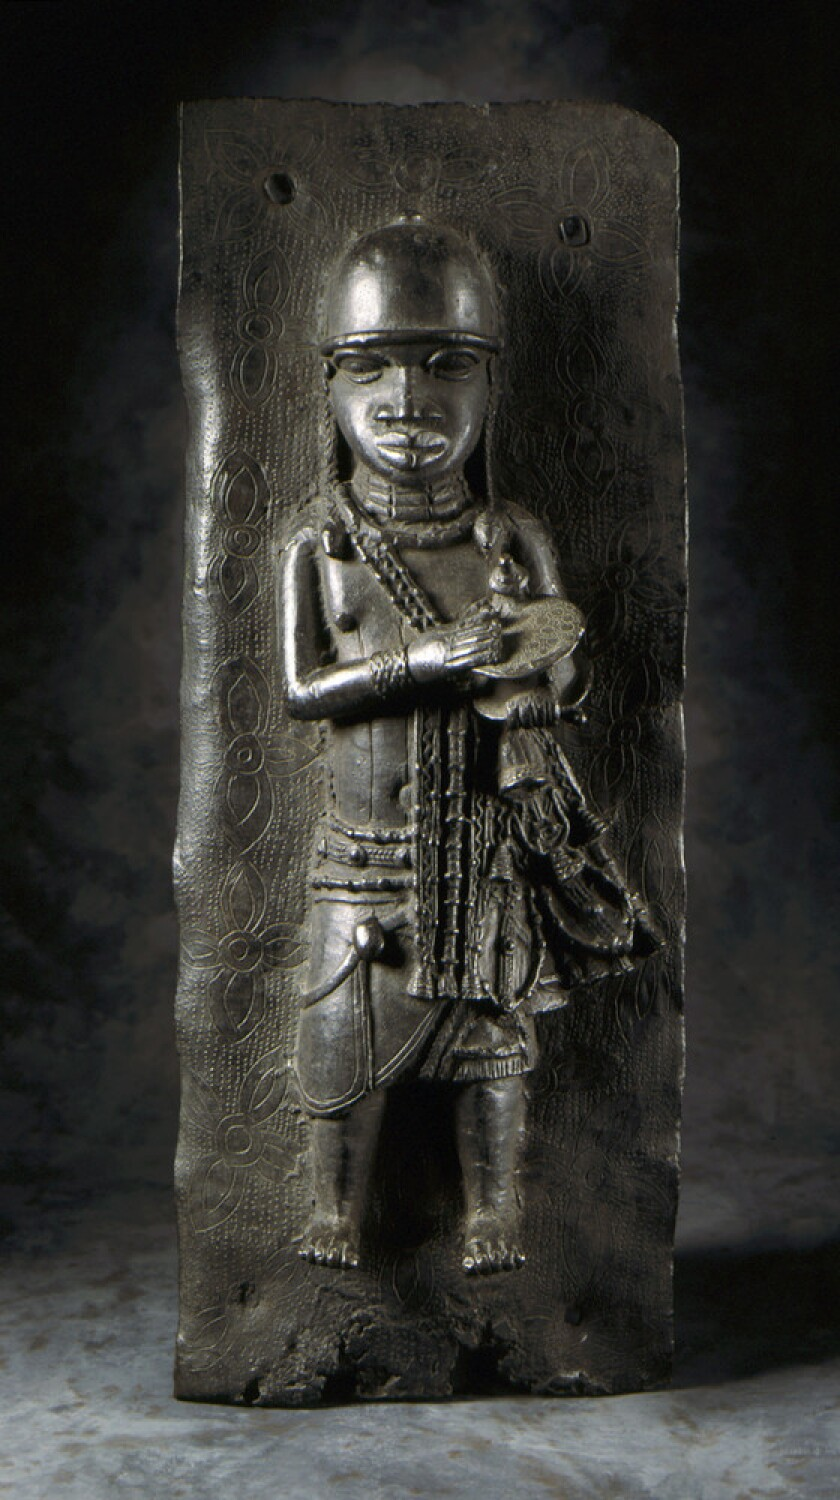 A figure of a person in relief on a block